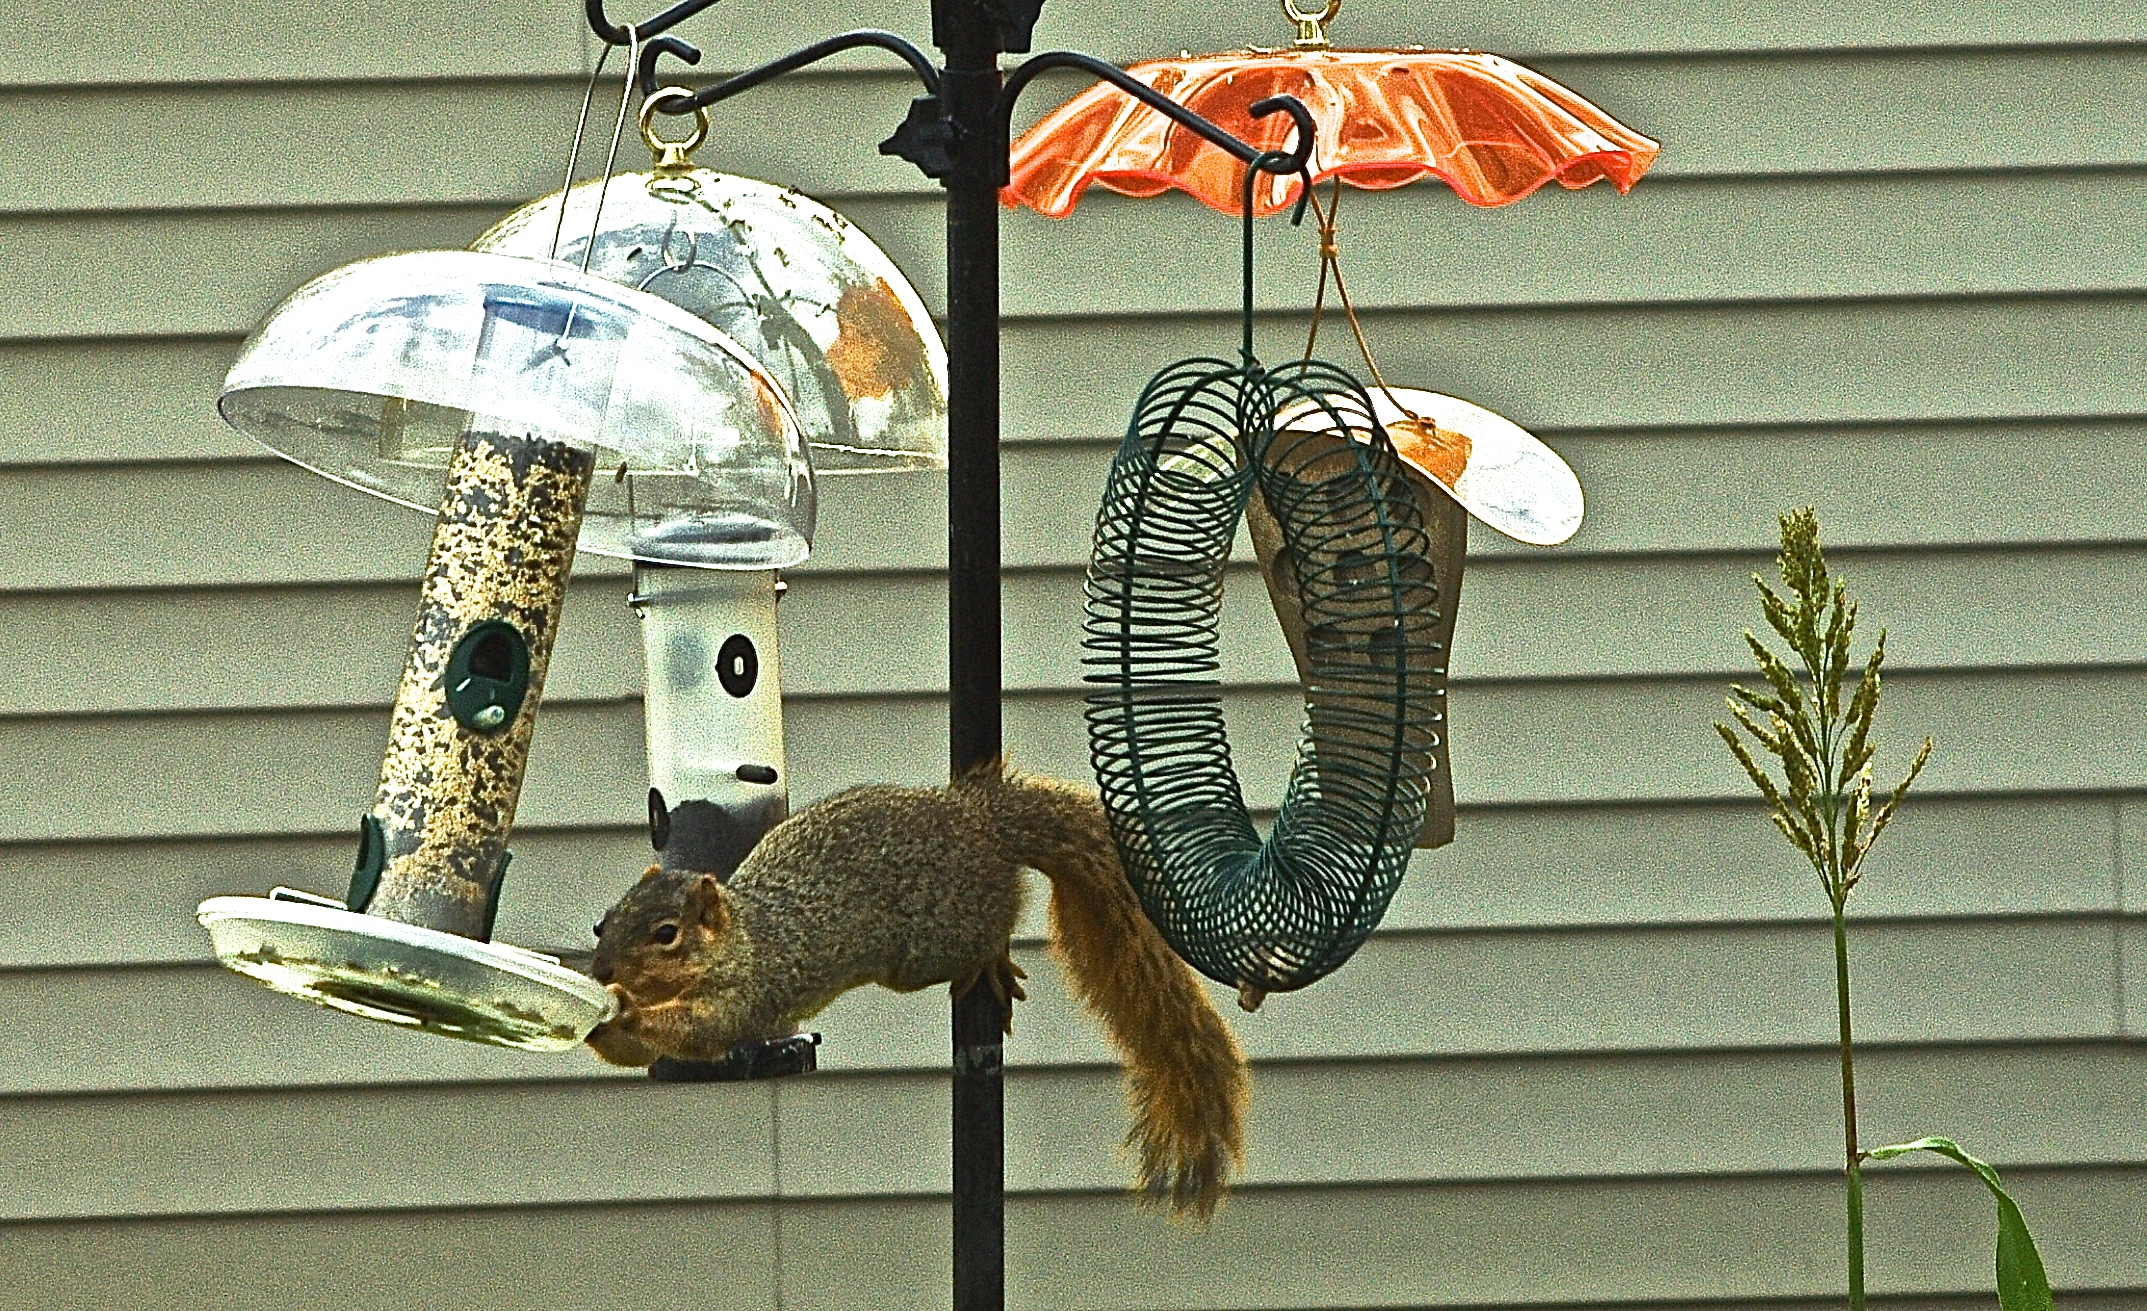 audubon off cc tony credit bird ground choosing flickr photo feeder a york alter keep new squirrels conservation